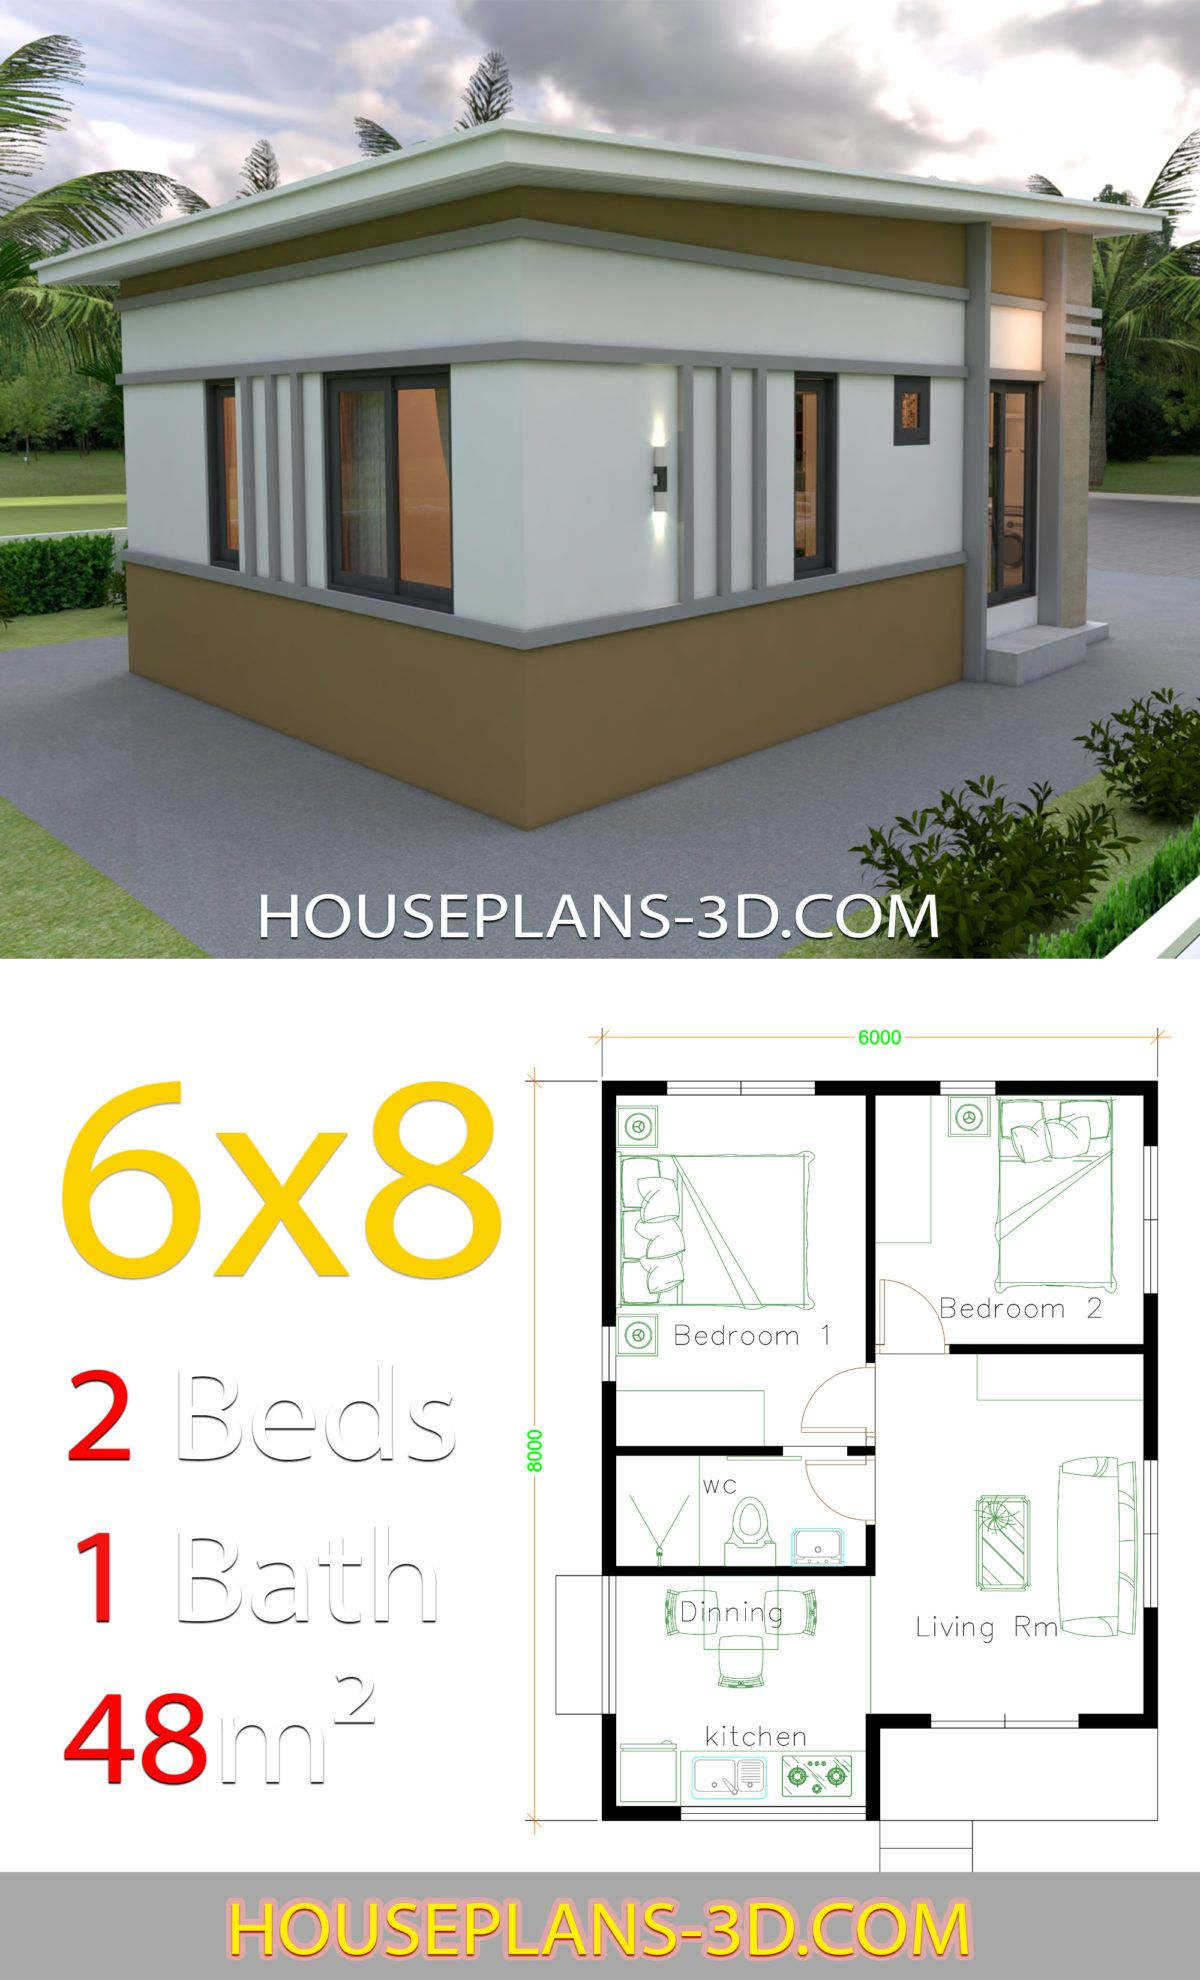 Small House Design Plans 6x8 With 2 Bedrooms House Plans 3d In 2020 House Plans Small House Design Plans Small House Design